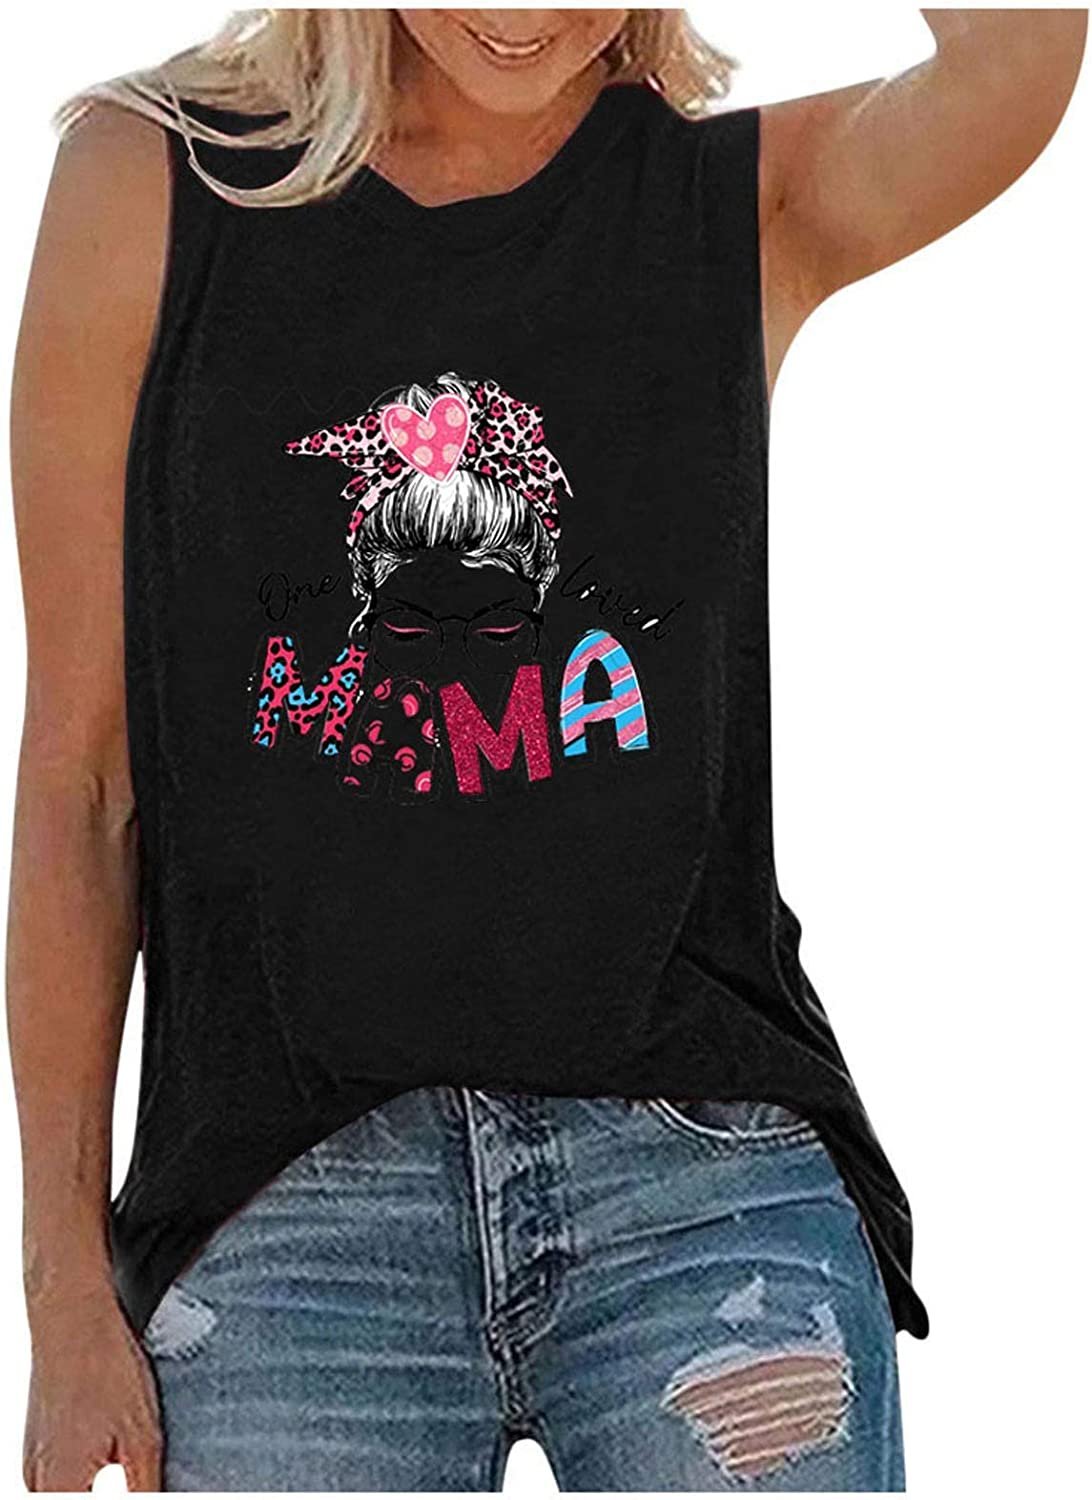 Summer Tops for Women,Womens Summer Tops O-Neck Daisy Print Sleeveless Tank T-Shirts Loose Graphic Blouse